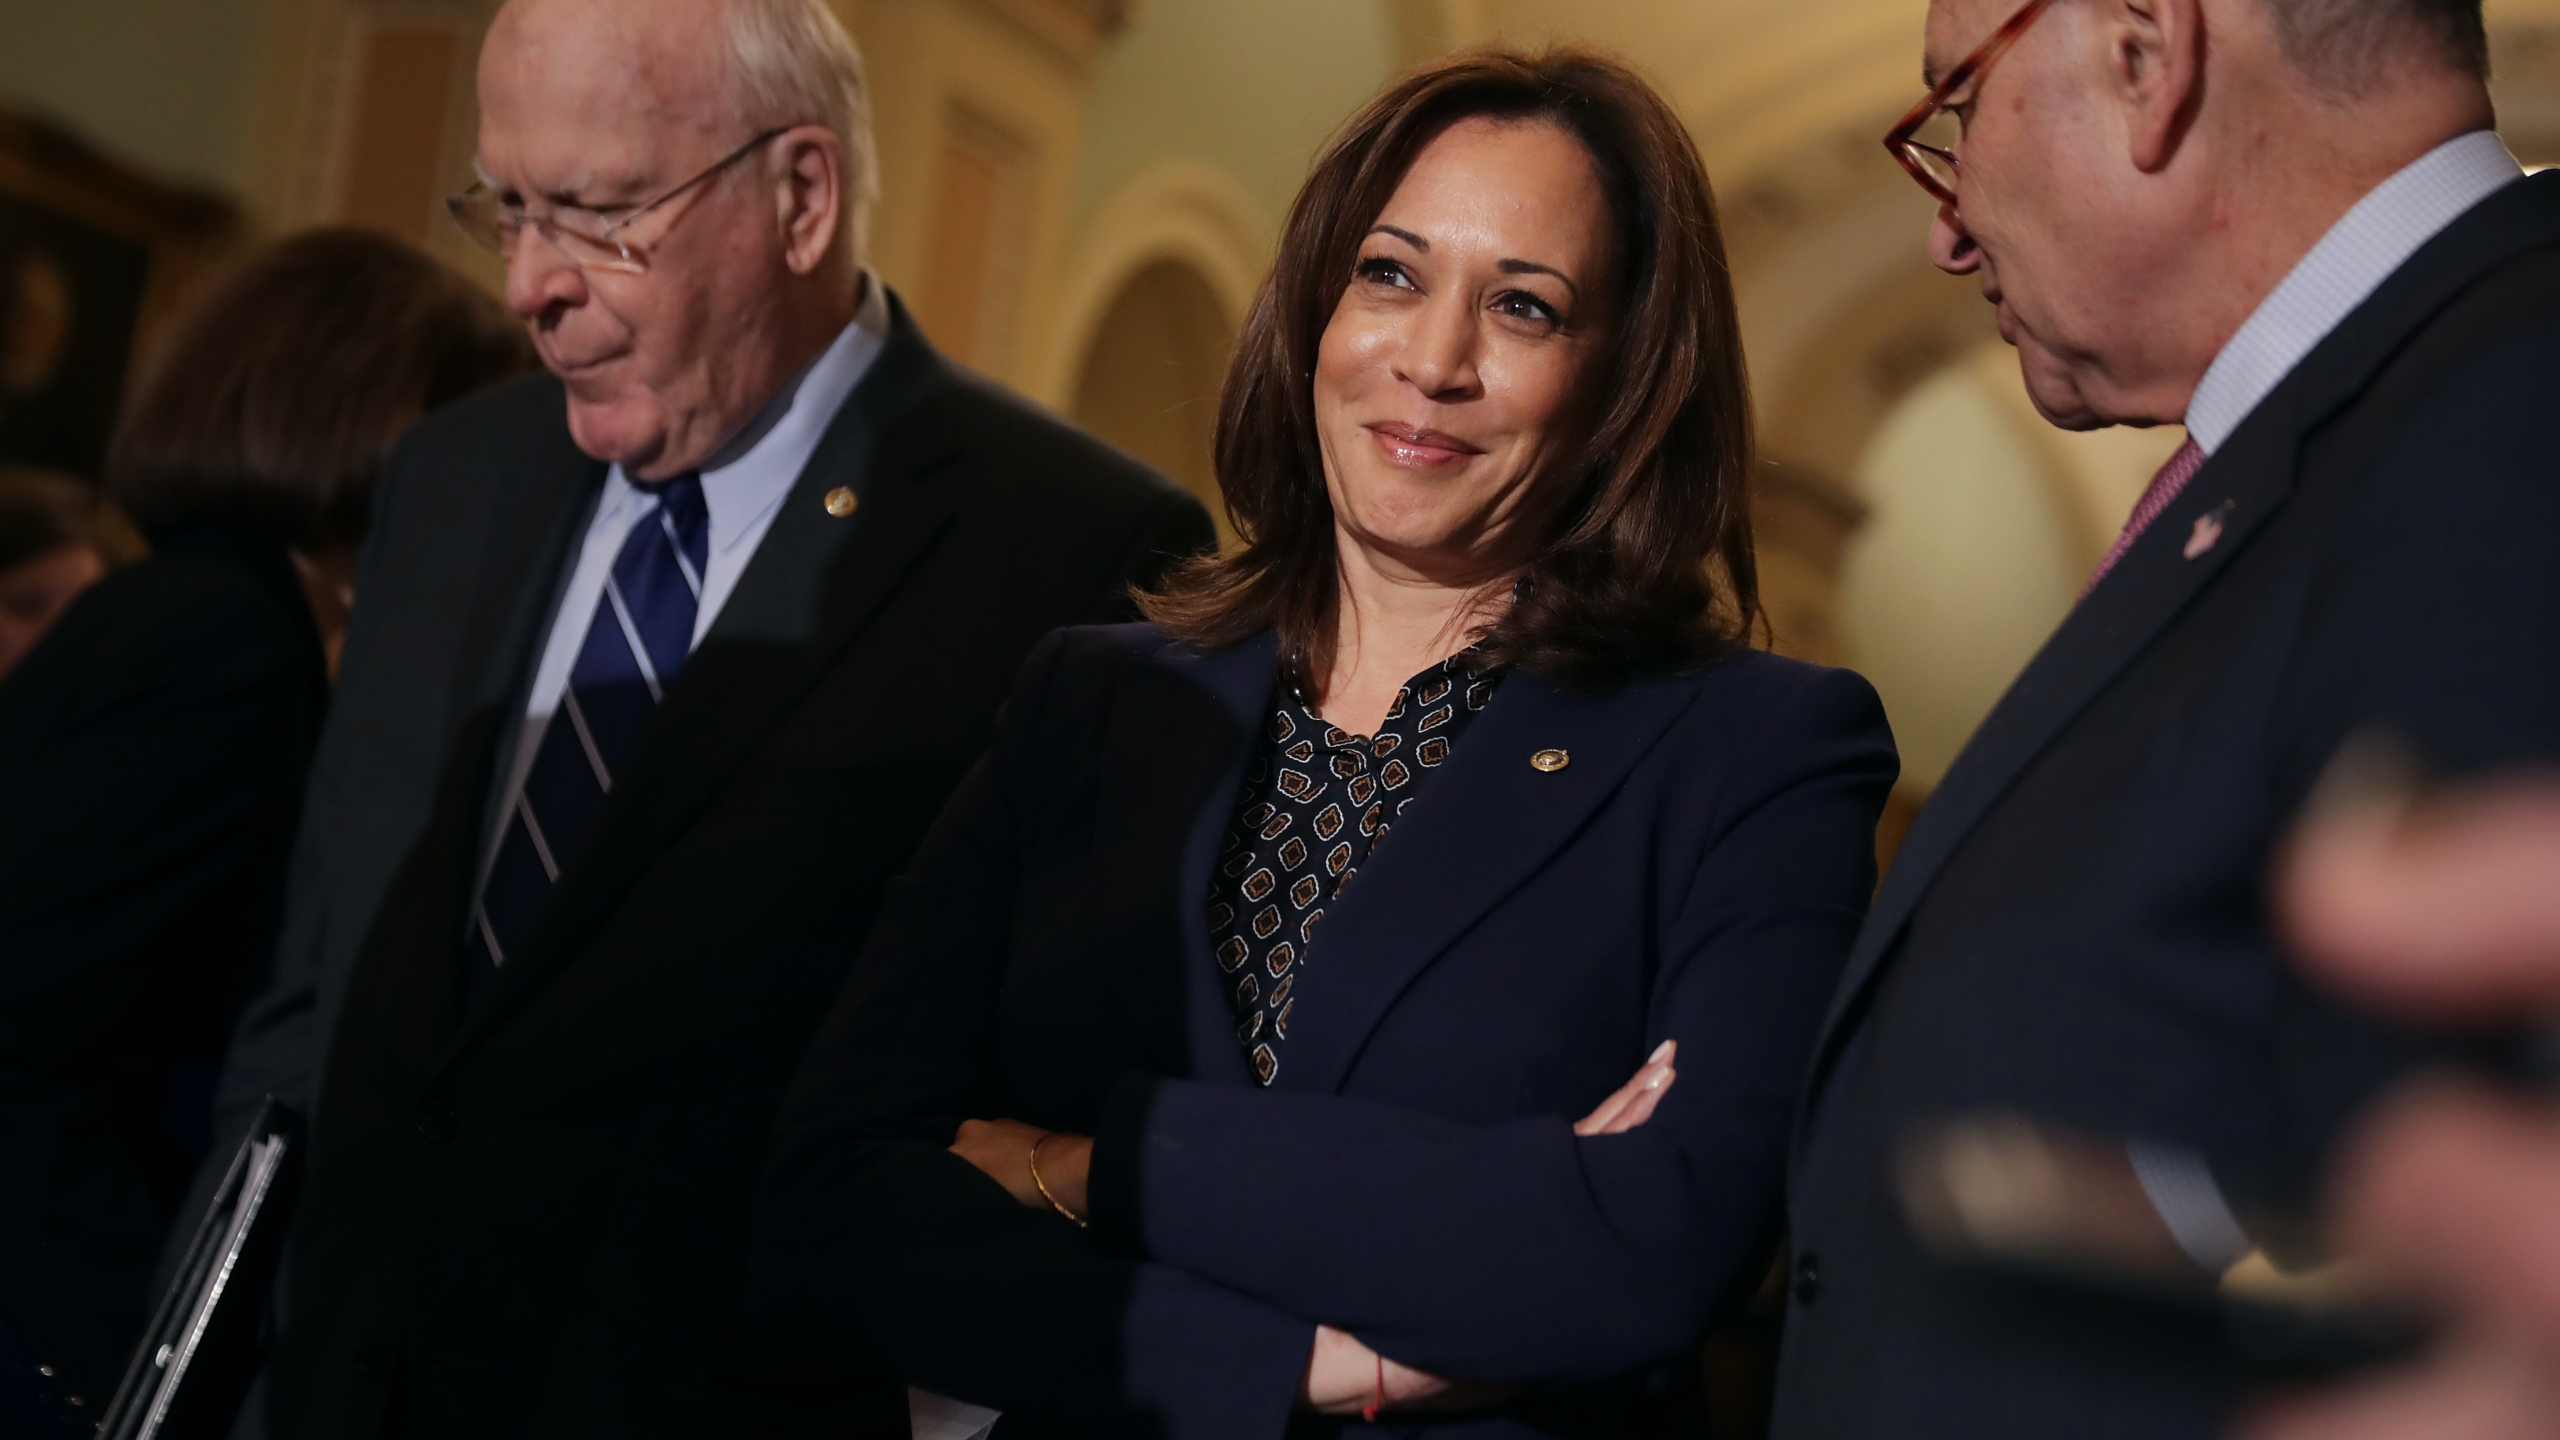 Sen. Kamala Harris stand between Sen. Patrick Leahy (D-VT) and Sen. Charles Schumer (D-NY) as they talk to reporters following the weekly Democratic Senate policy luncheon in the U.S. Capitol on Nov. 27, 2018 in Washington, D.C. (Credit: Chip Somodevilla/Getty Images)